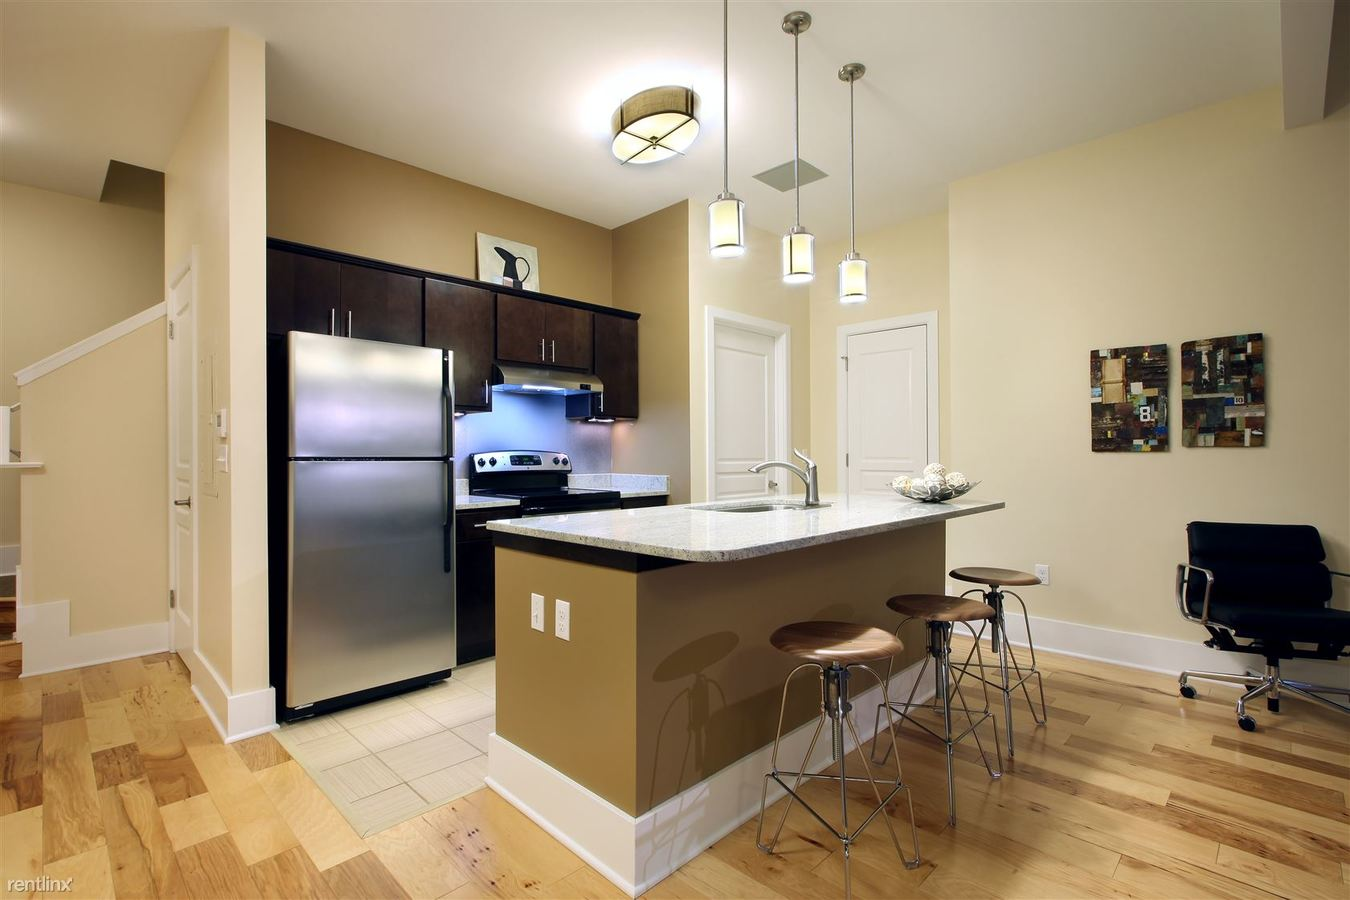 3 Bedrooms 2 Bathrooms Apartment for rent at Division Park Avenue Apartments in Grand Rapids, MI